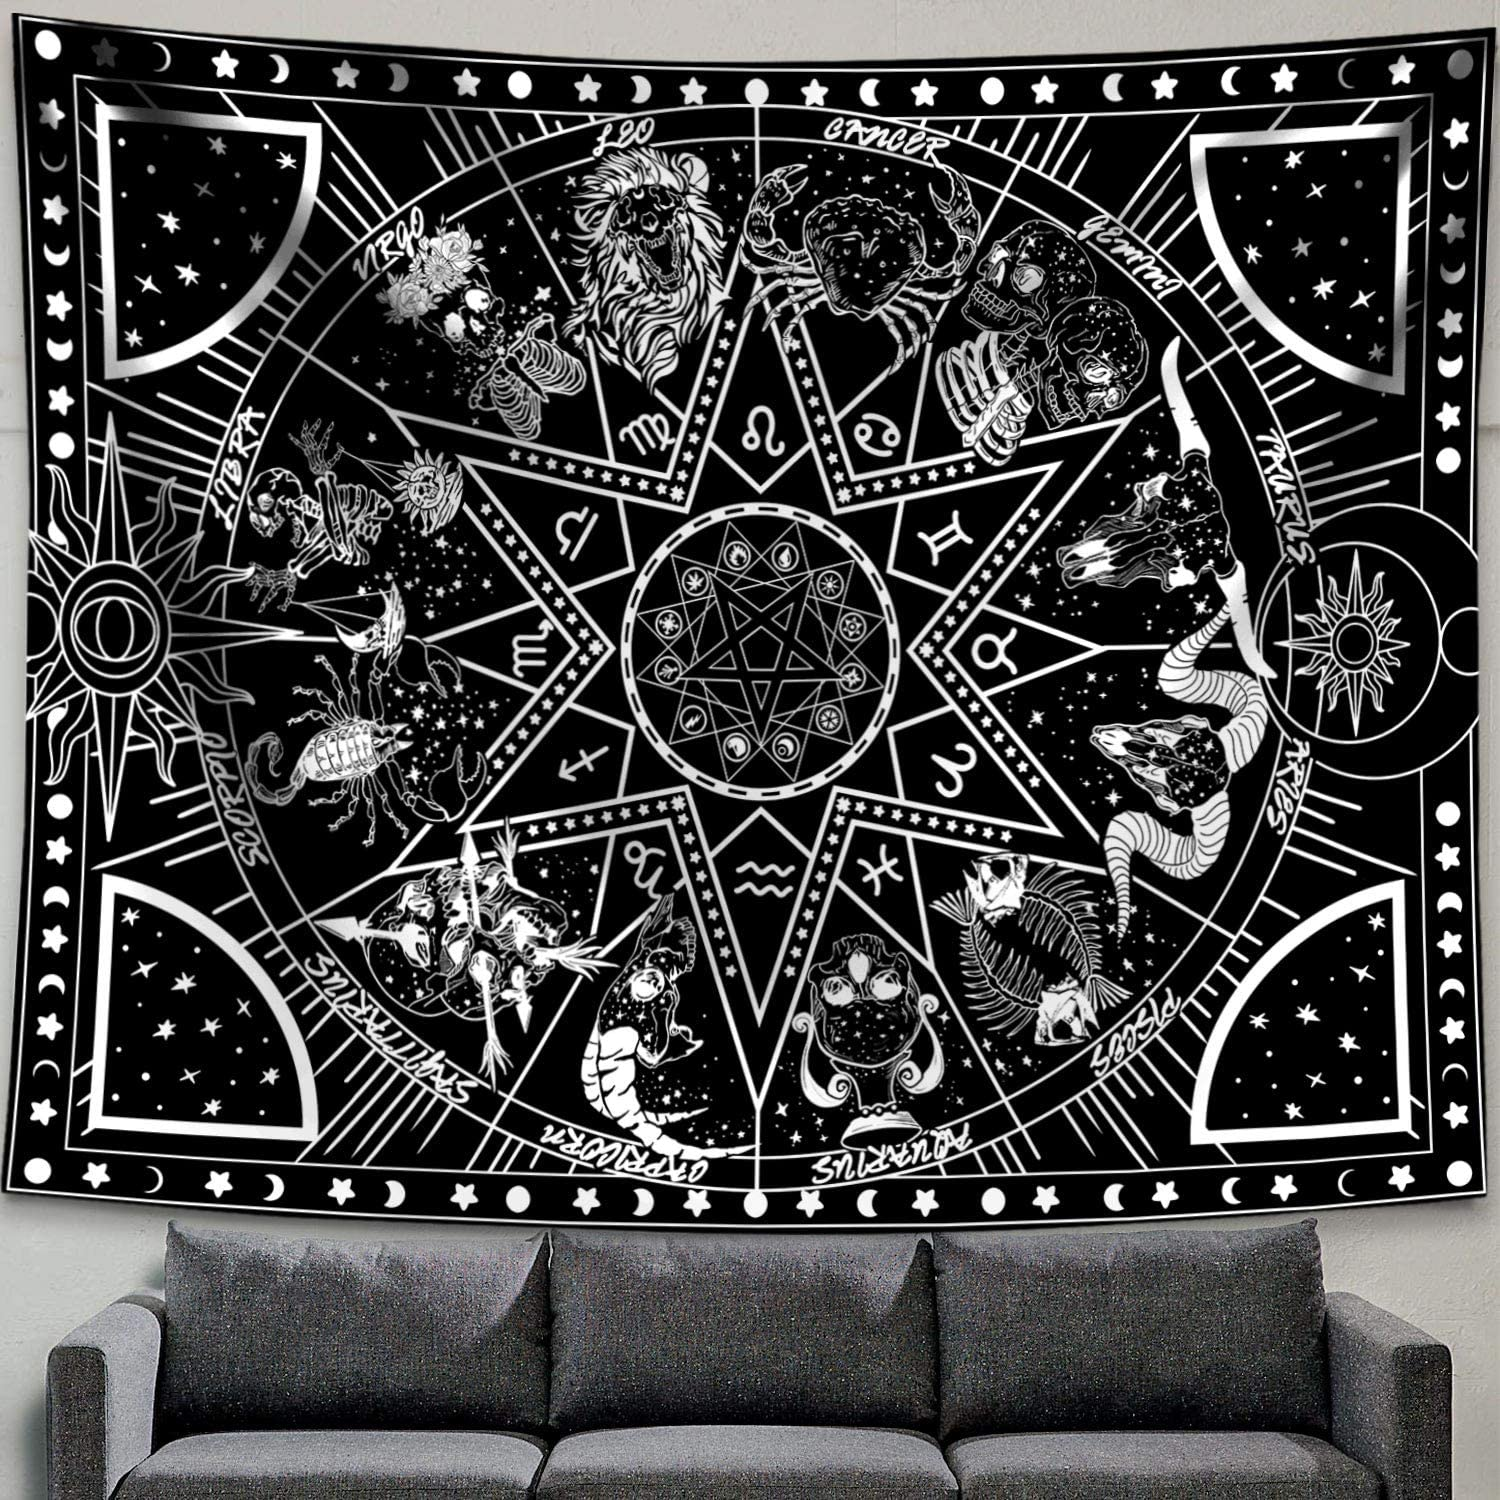 Zussun 12 Constellation Tapestry Star Sun Tarot Tapestry Black and White Hippy CelestialBohemian Home Decor (50